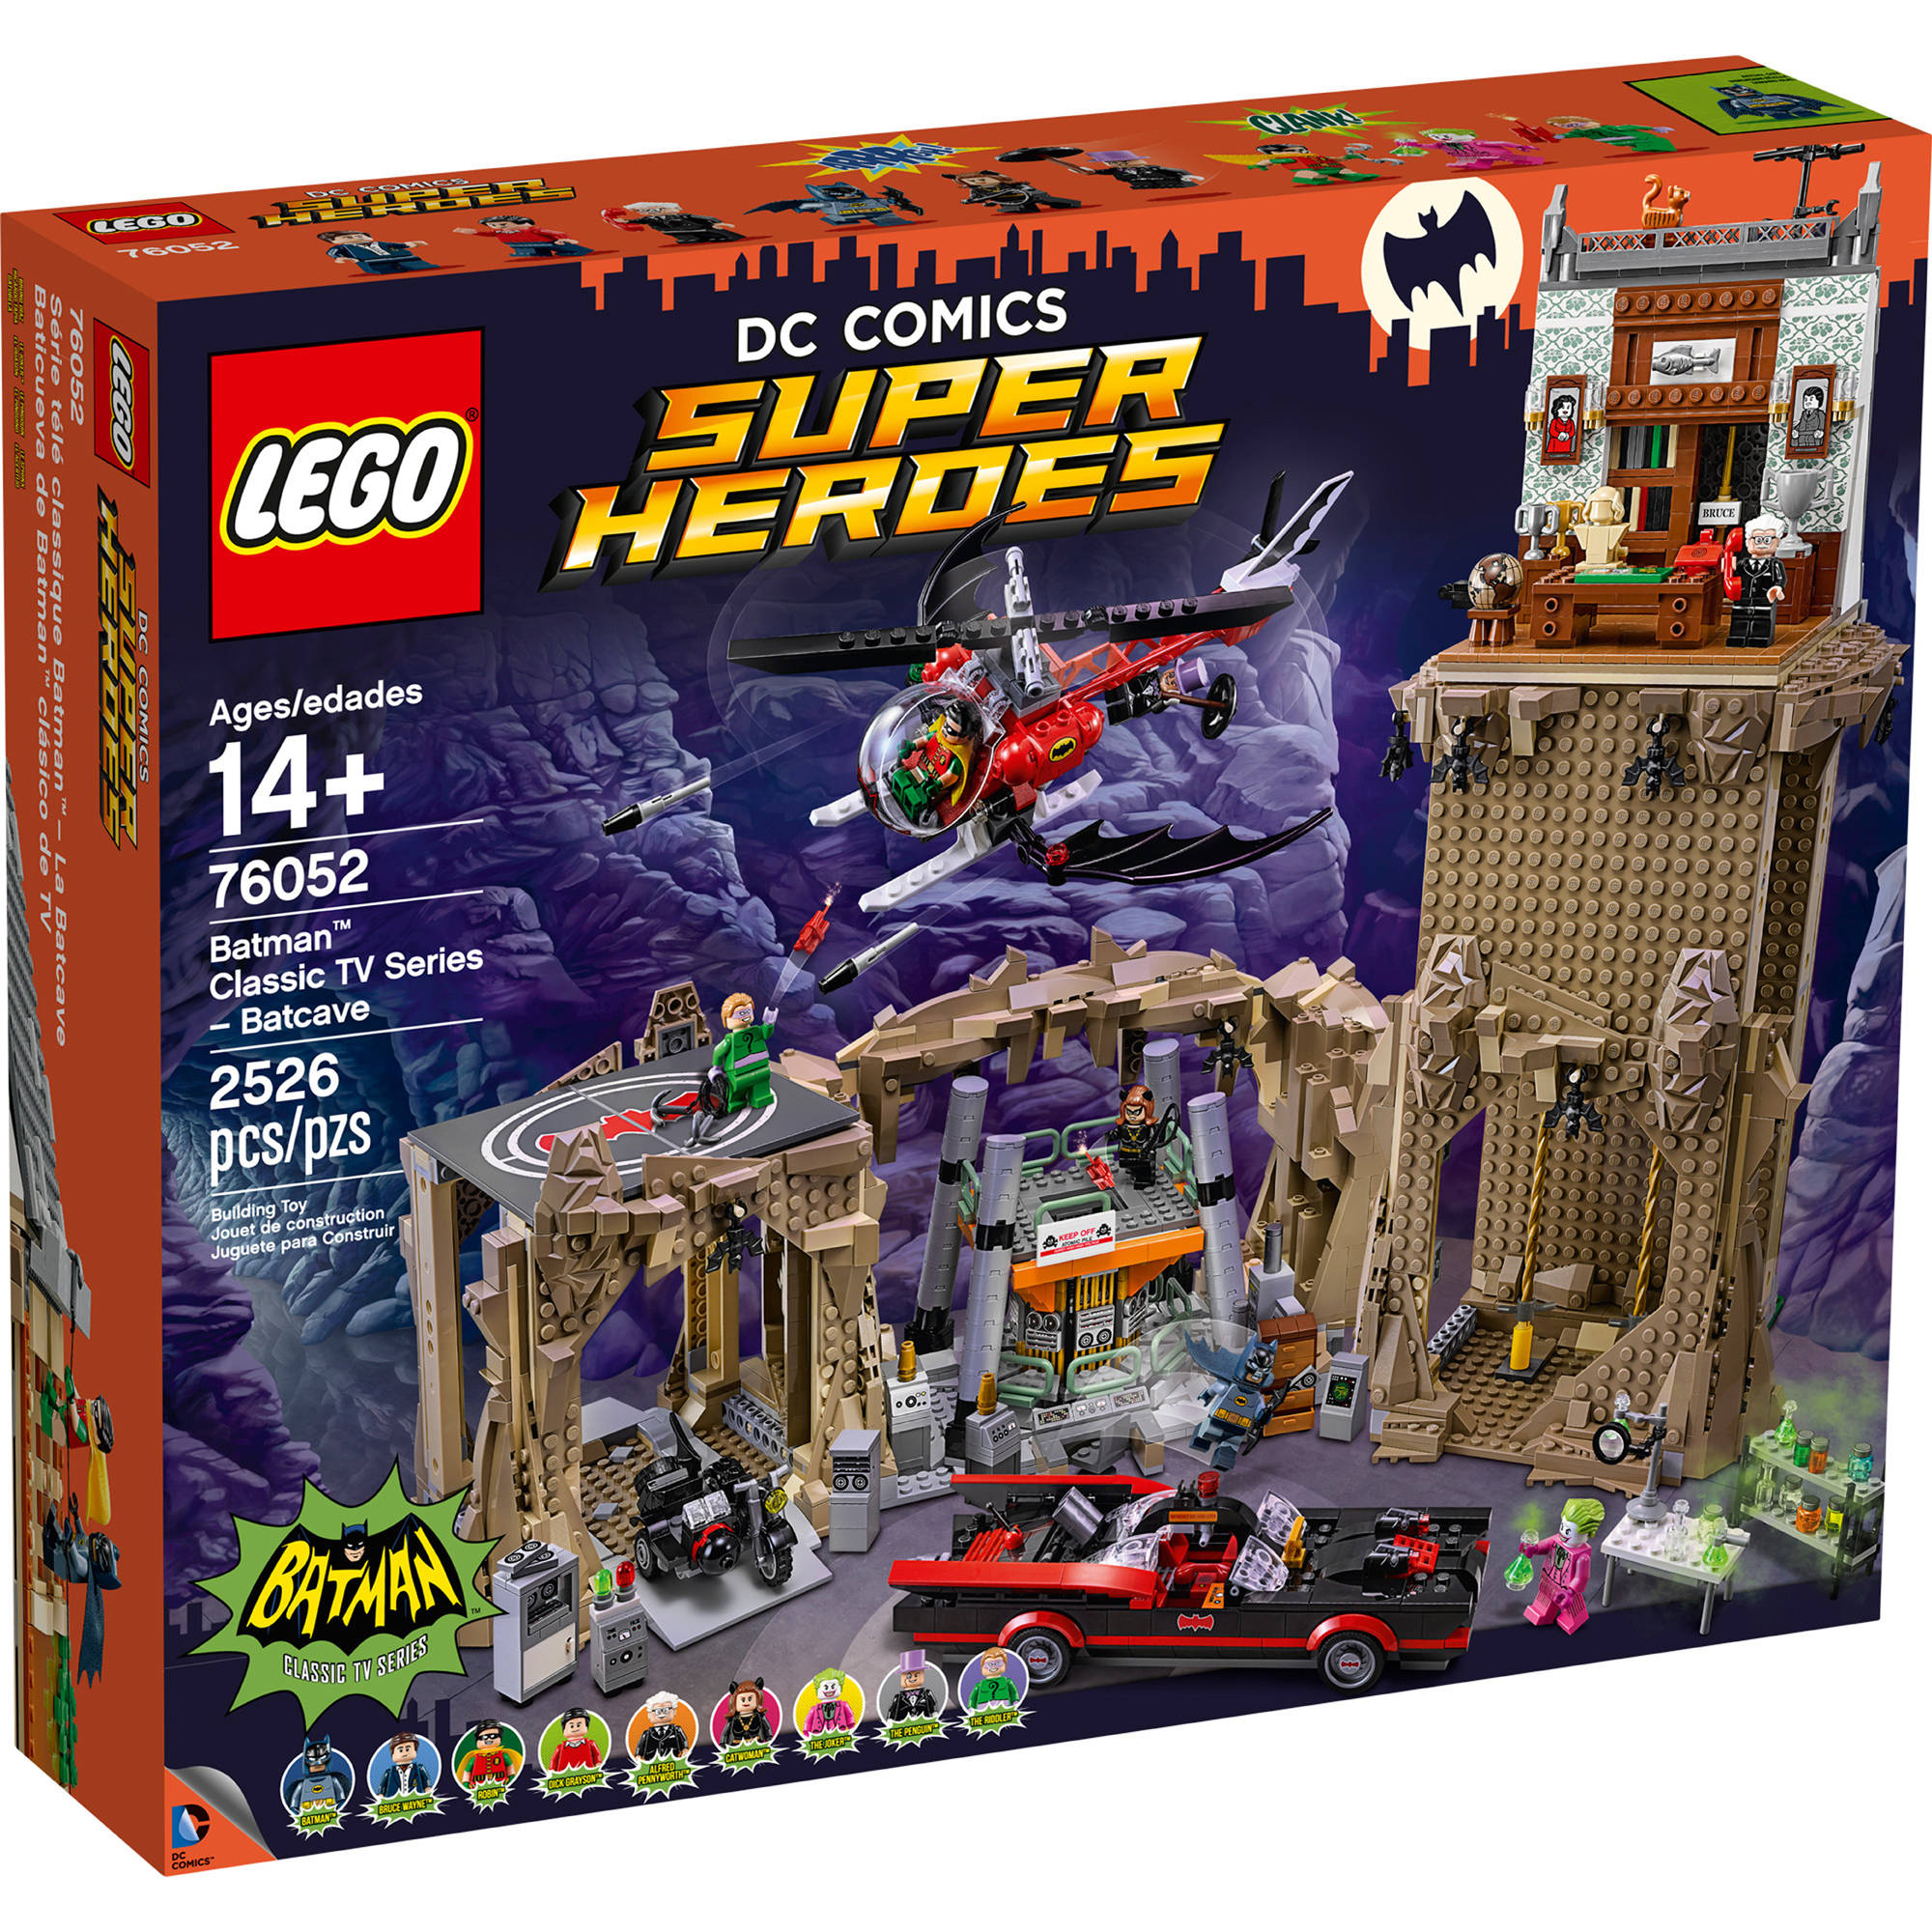 Lego Super Heroes Batman Classic TV Series-Batcave 76052 by LEGO Systems, Inc.